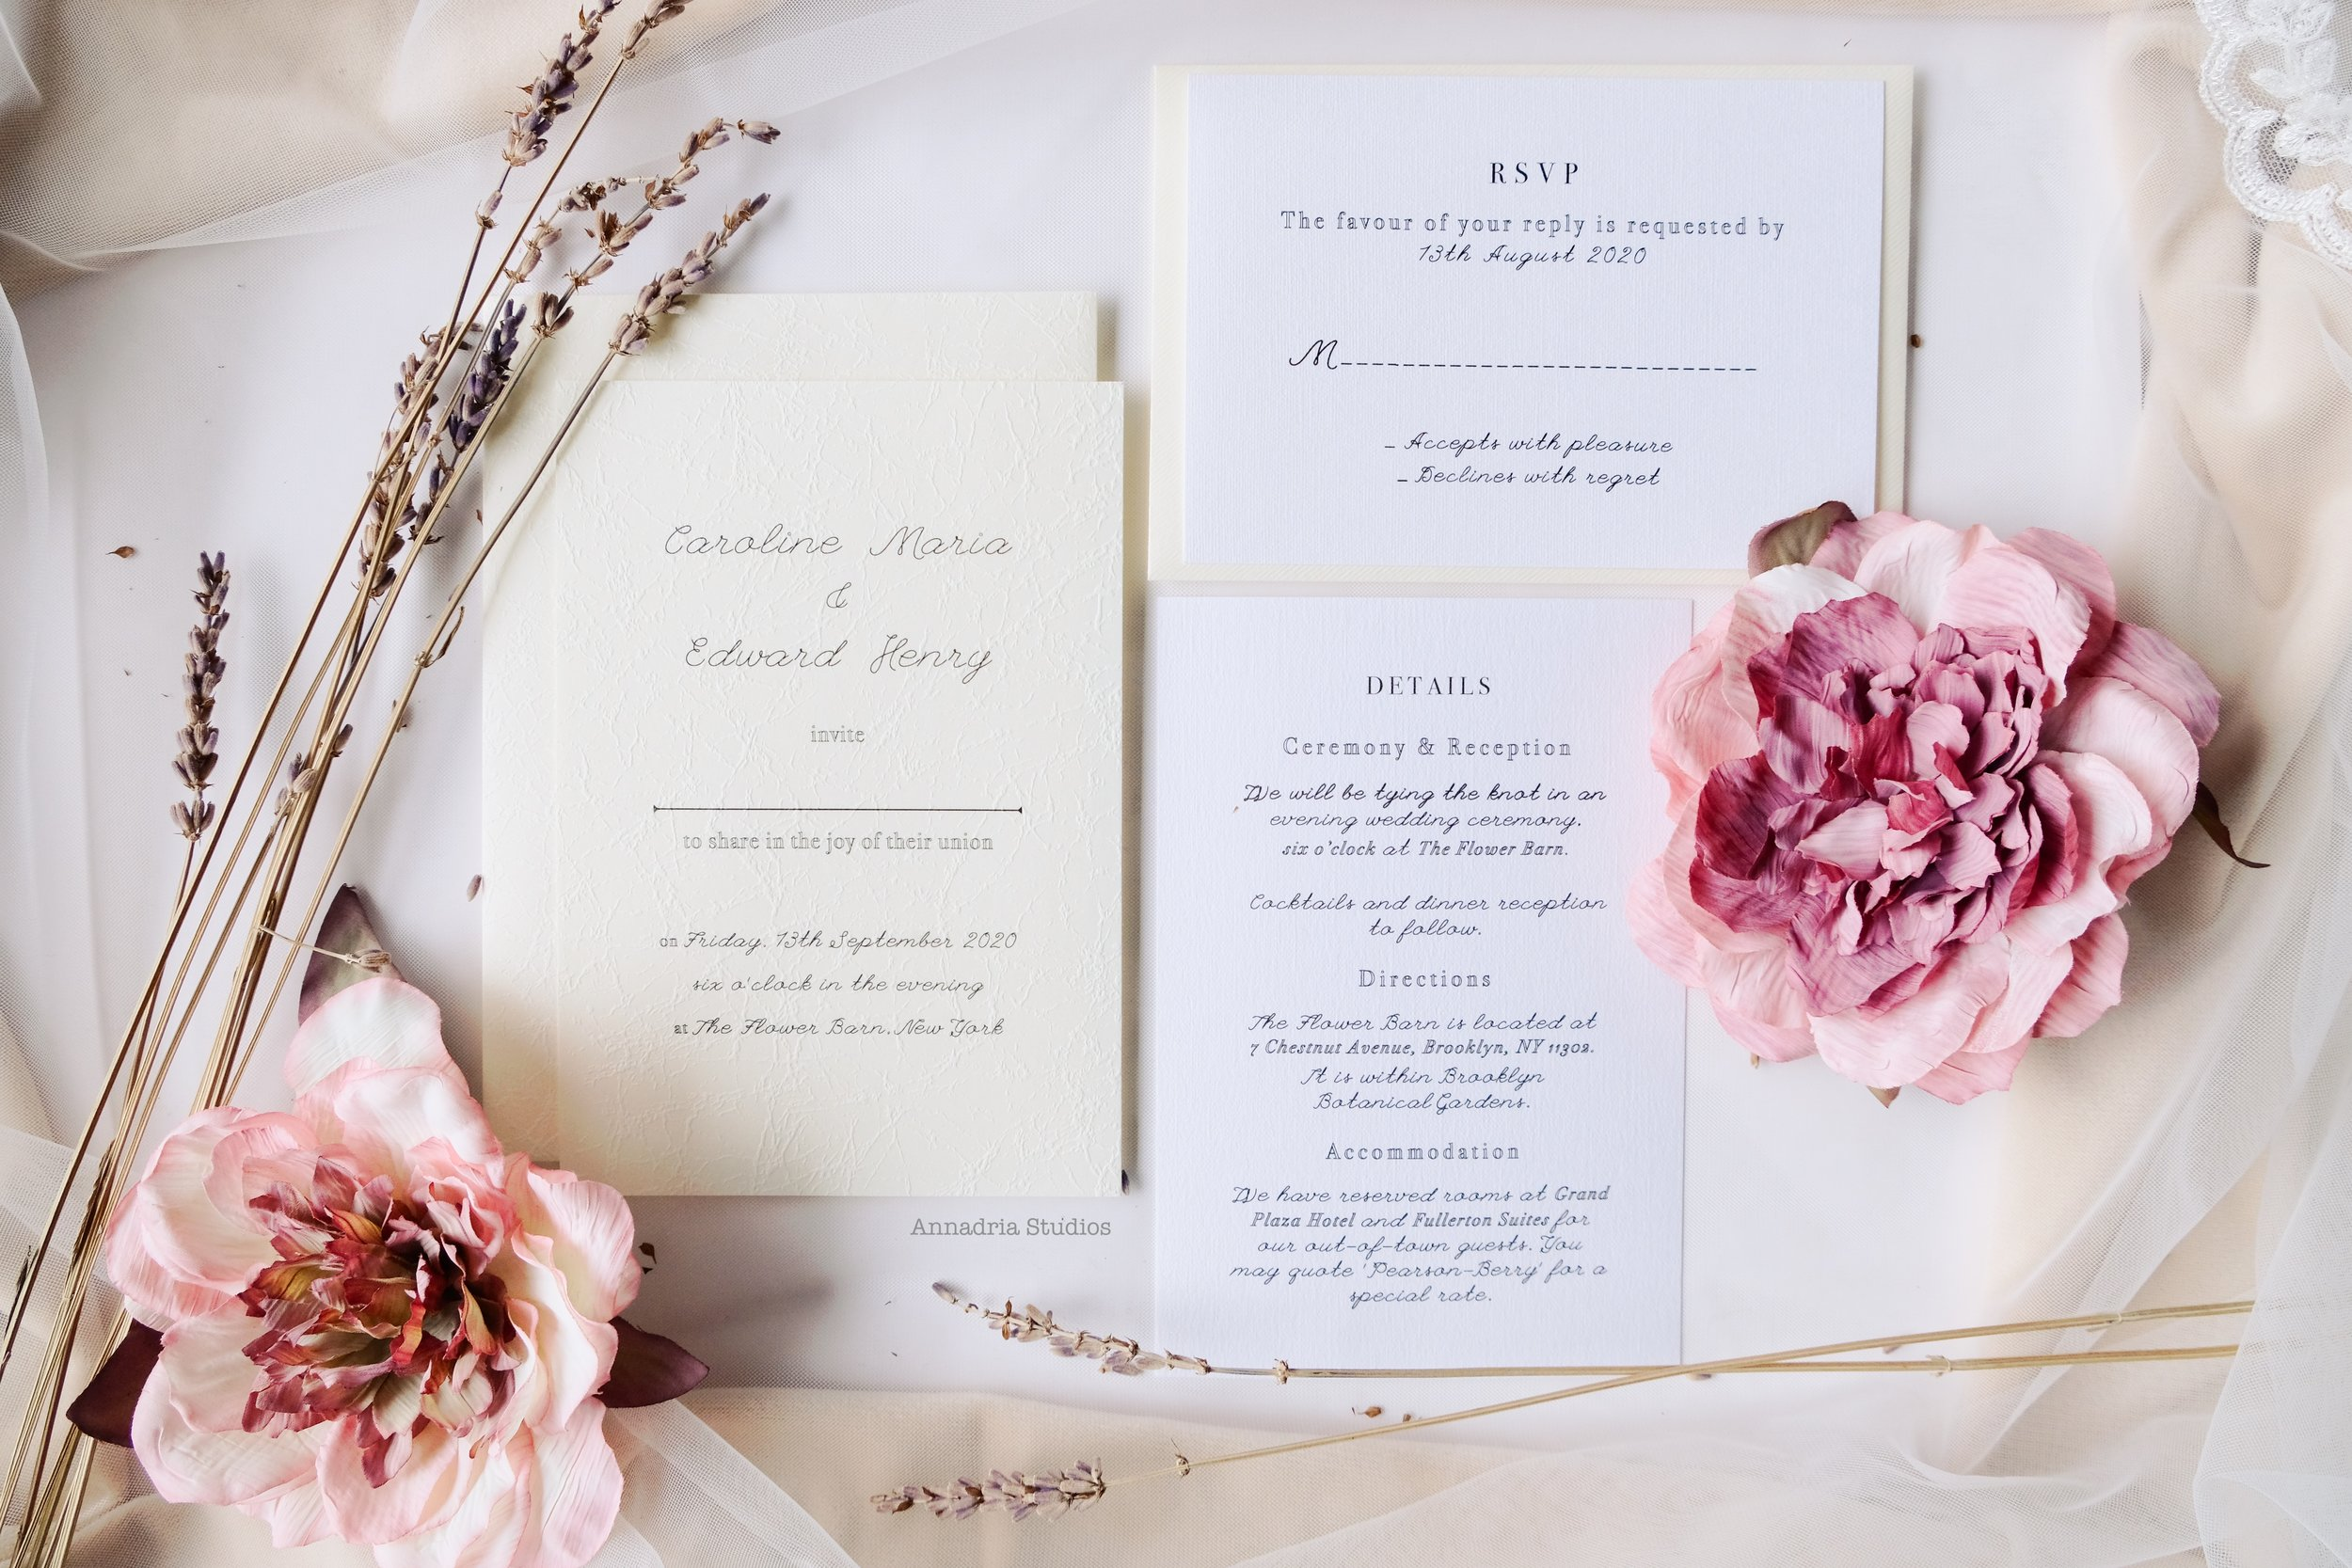 2. - Decide on the combination of stationery you'd like; invitation, save-the-date, RSVP, details, thank-you card, menu, program booklet.